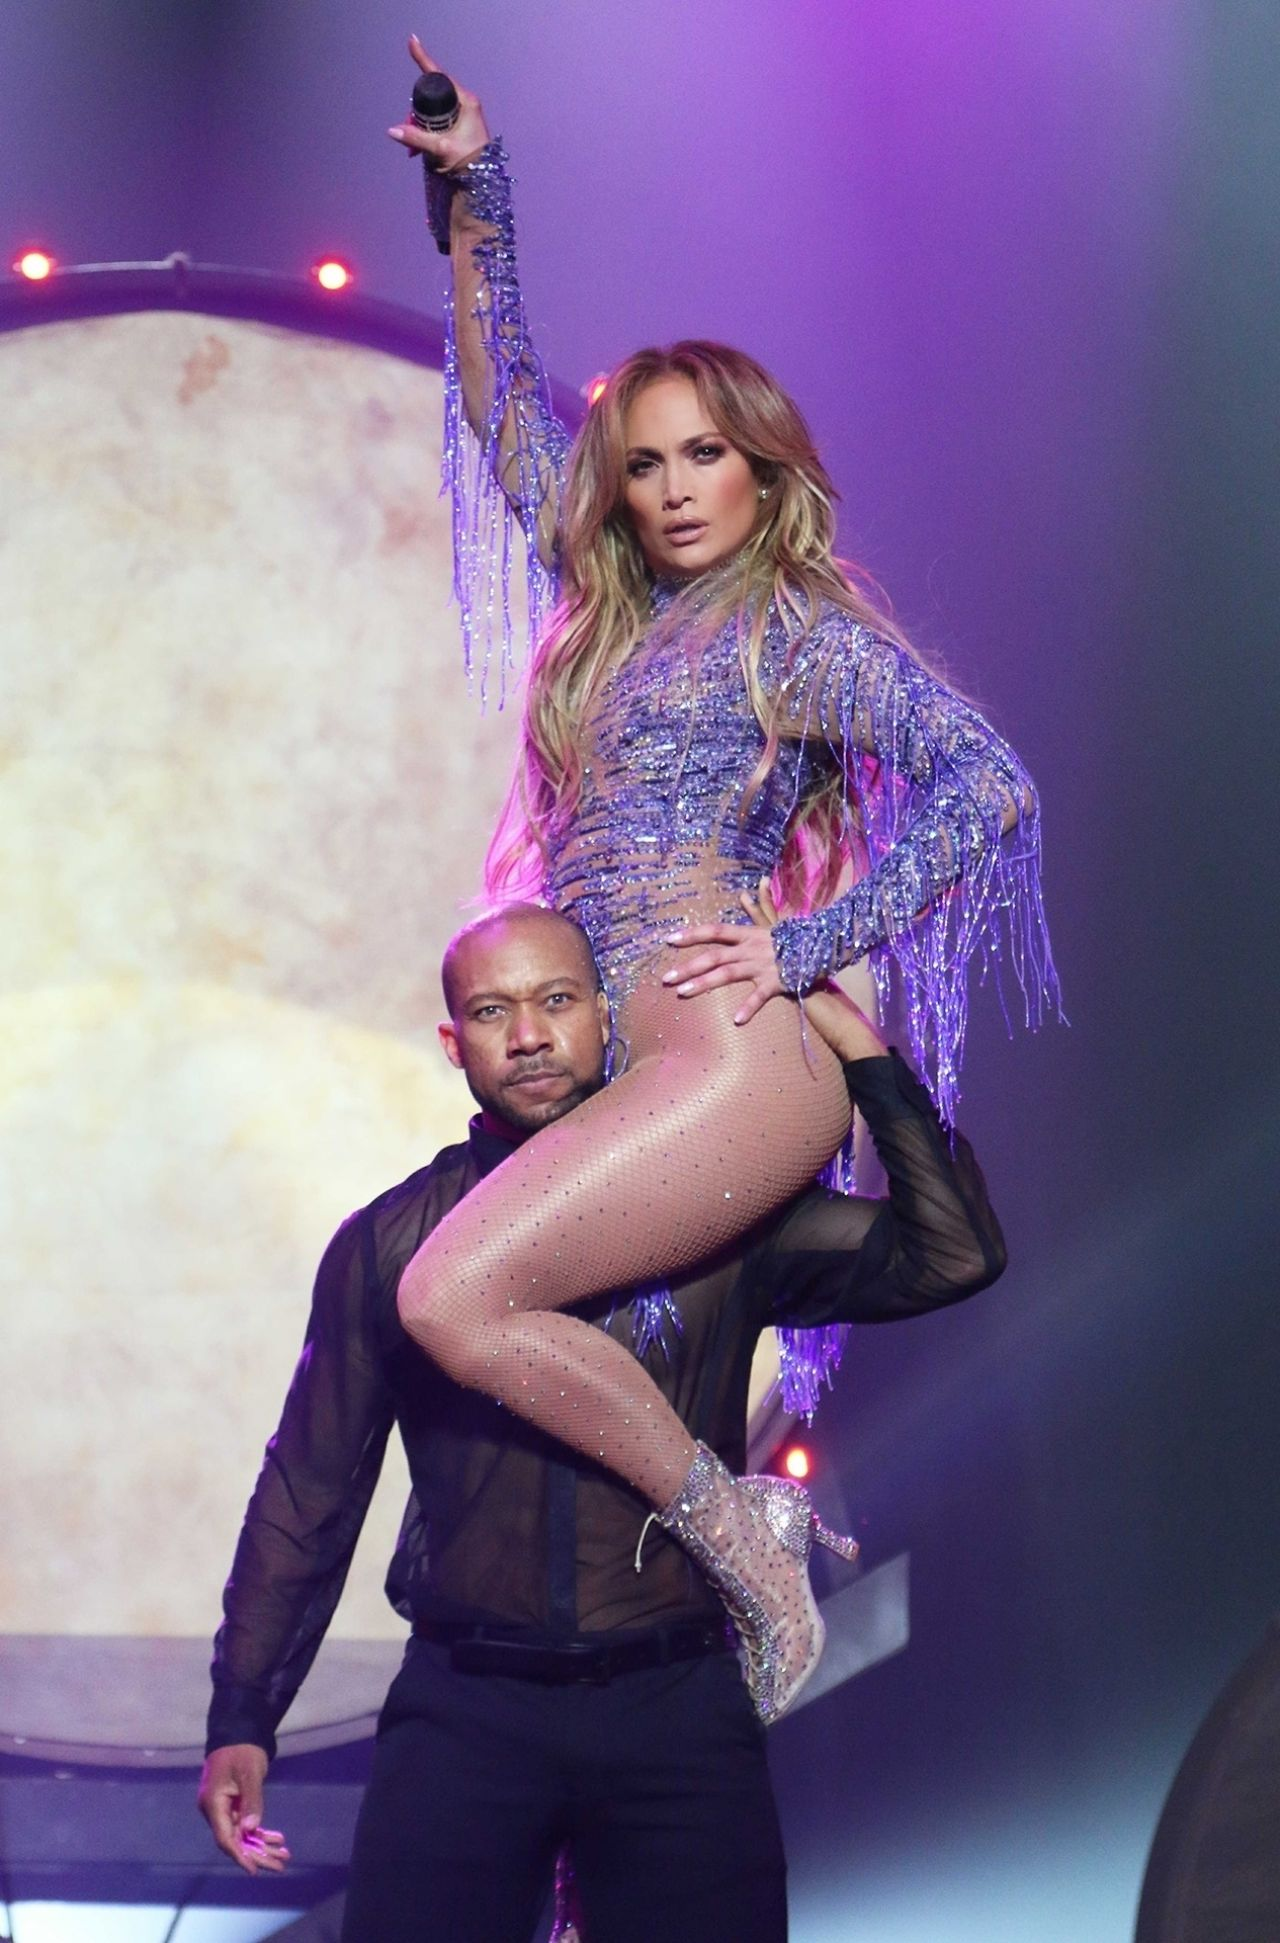 http://celebmafia.com/wp-content/uploads/2018/02/jennifer-lopez-performs-live-at-the-axis-in-planet-hollywood-in-las-vegas-02-23-2018-8.jpg